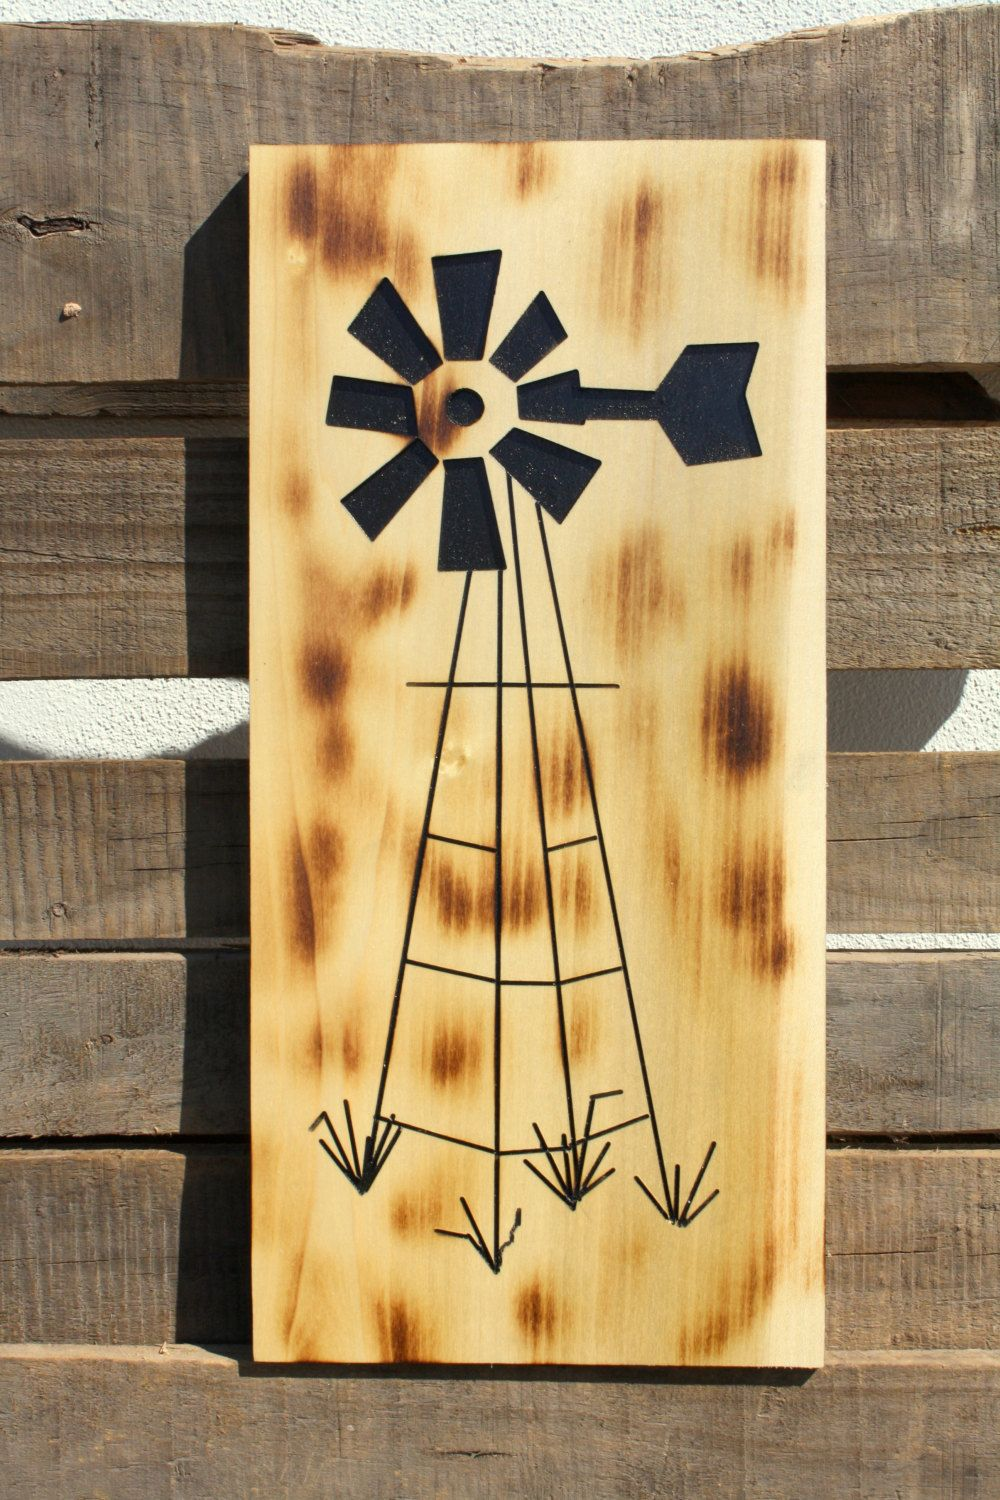 Rustic Home Decor, Carved wooden windmill wall art, Painted and ...